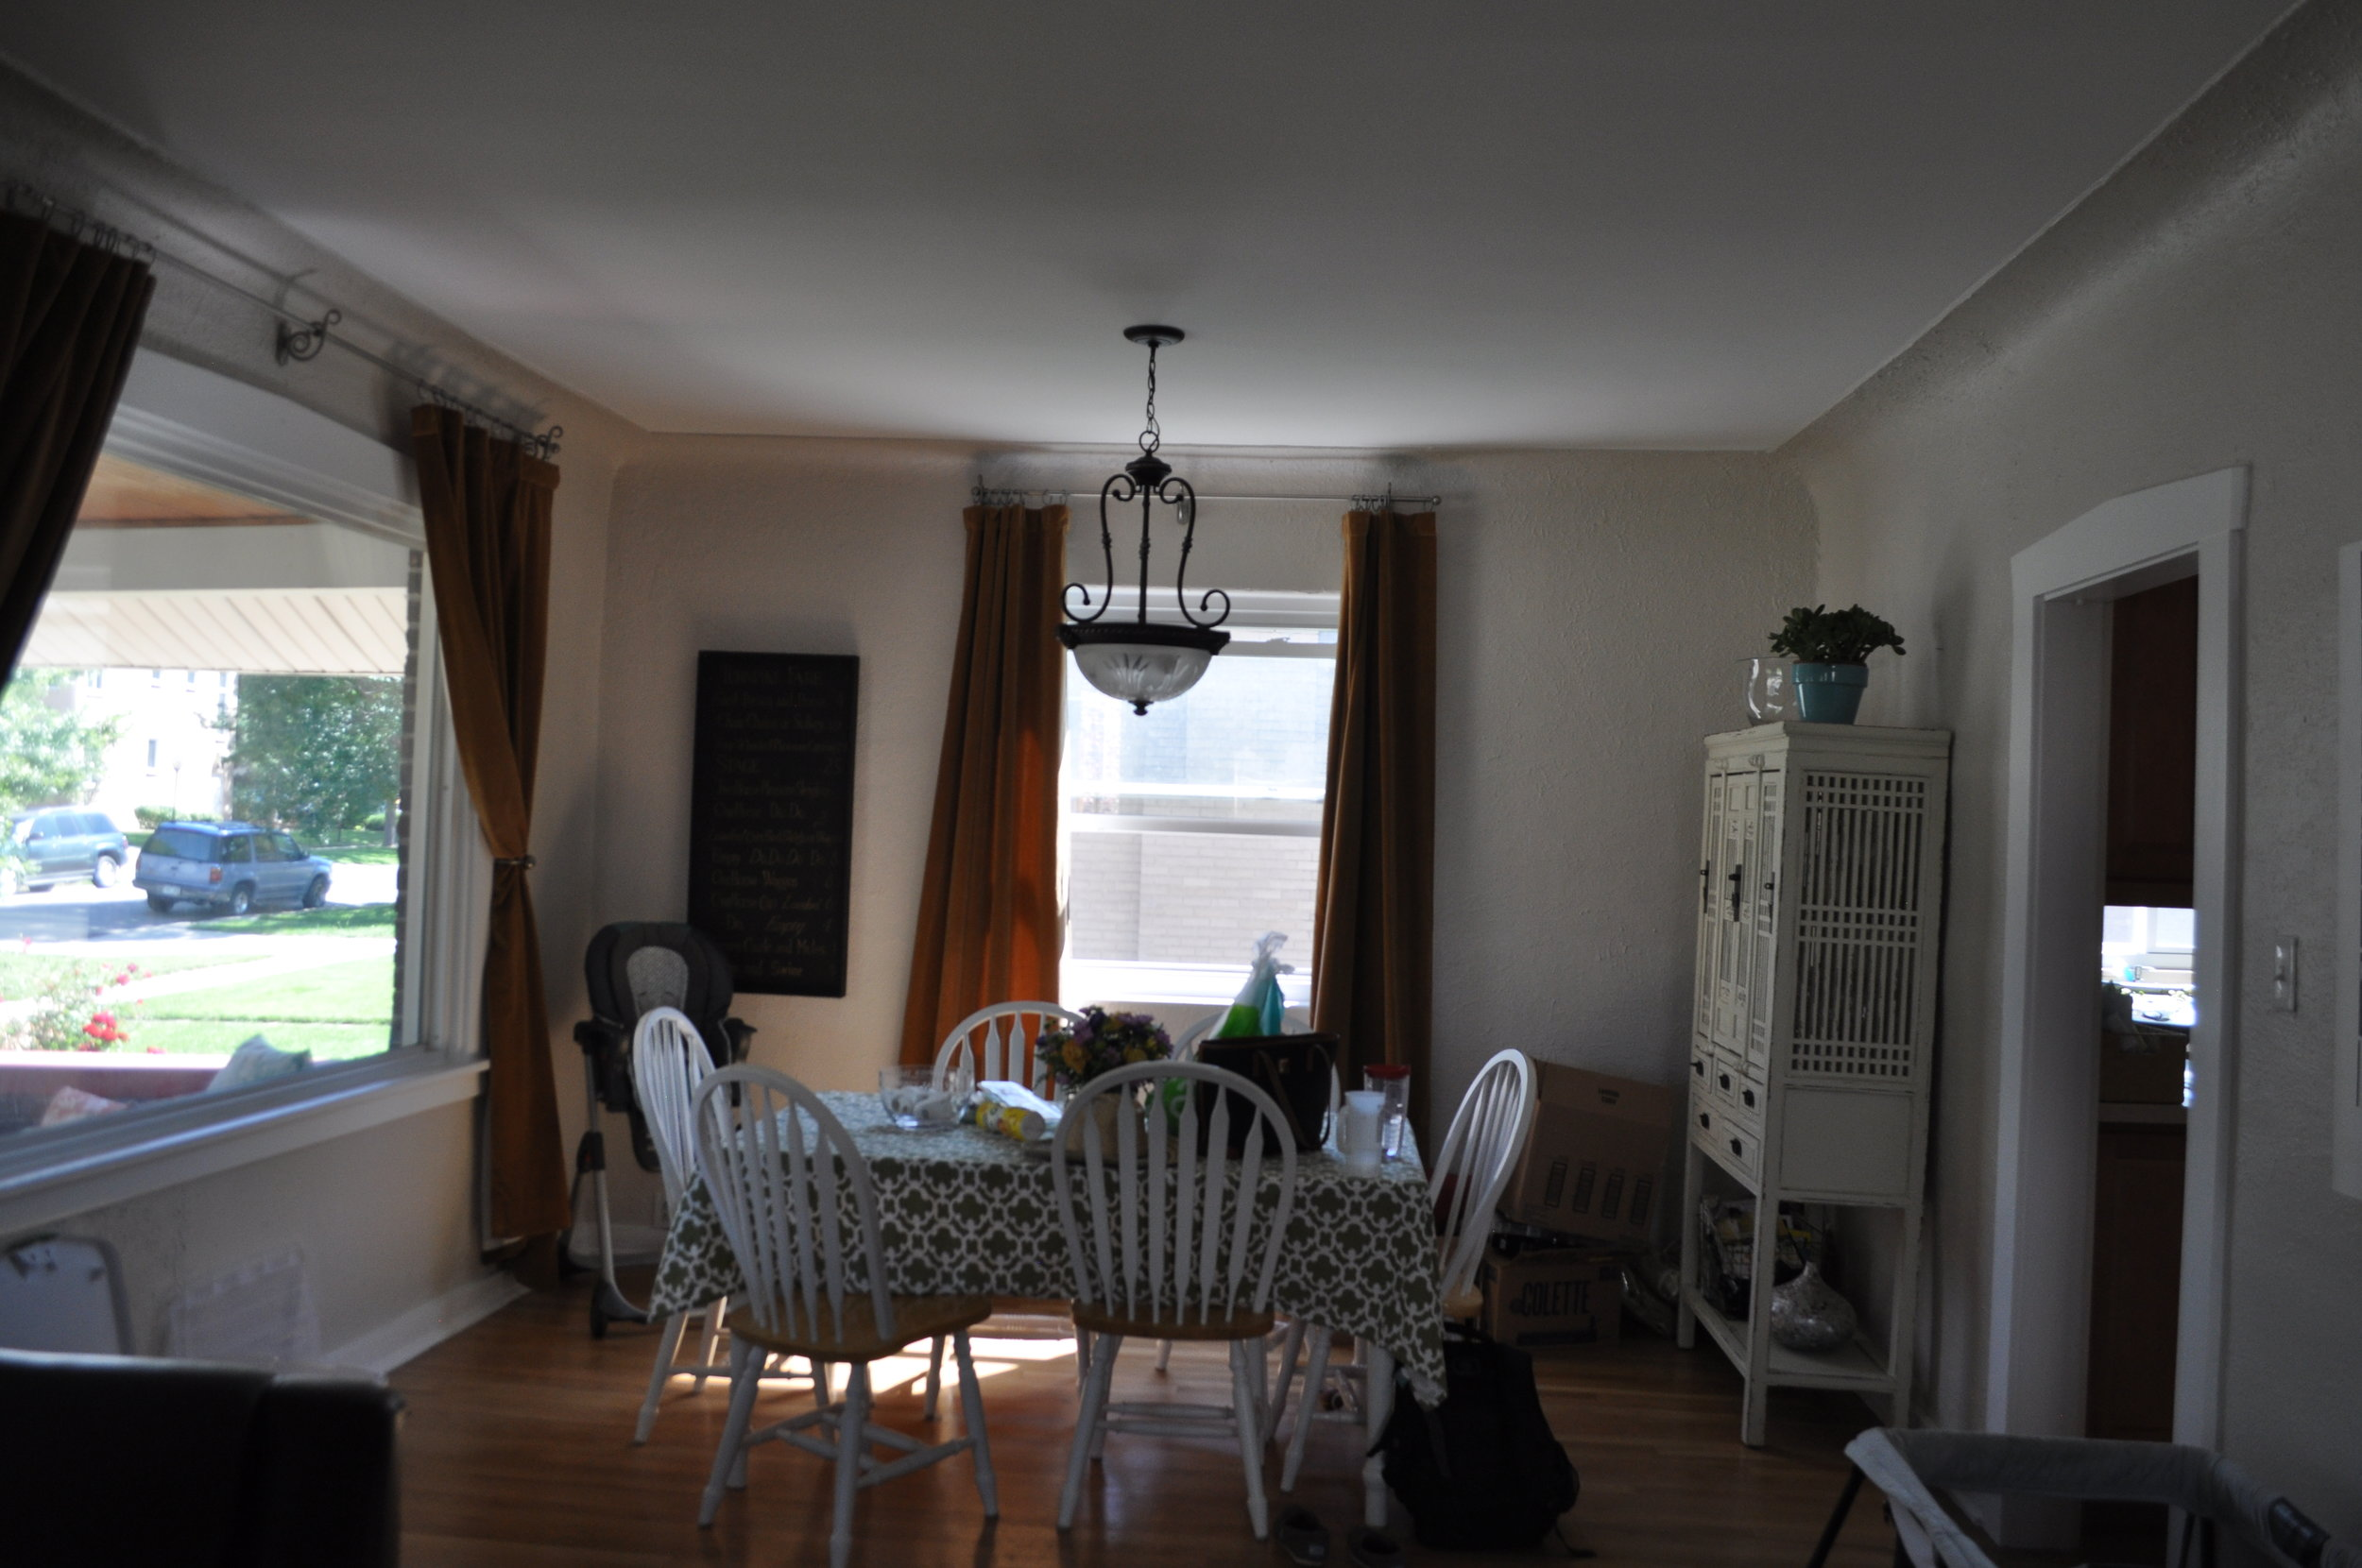 Dining room in the Neighborhood house